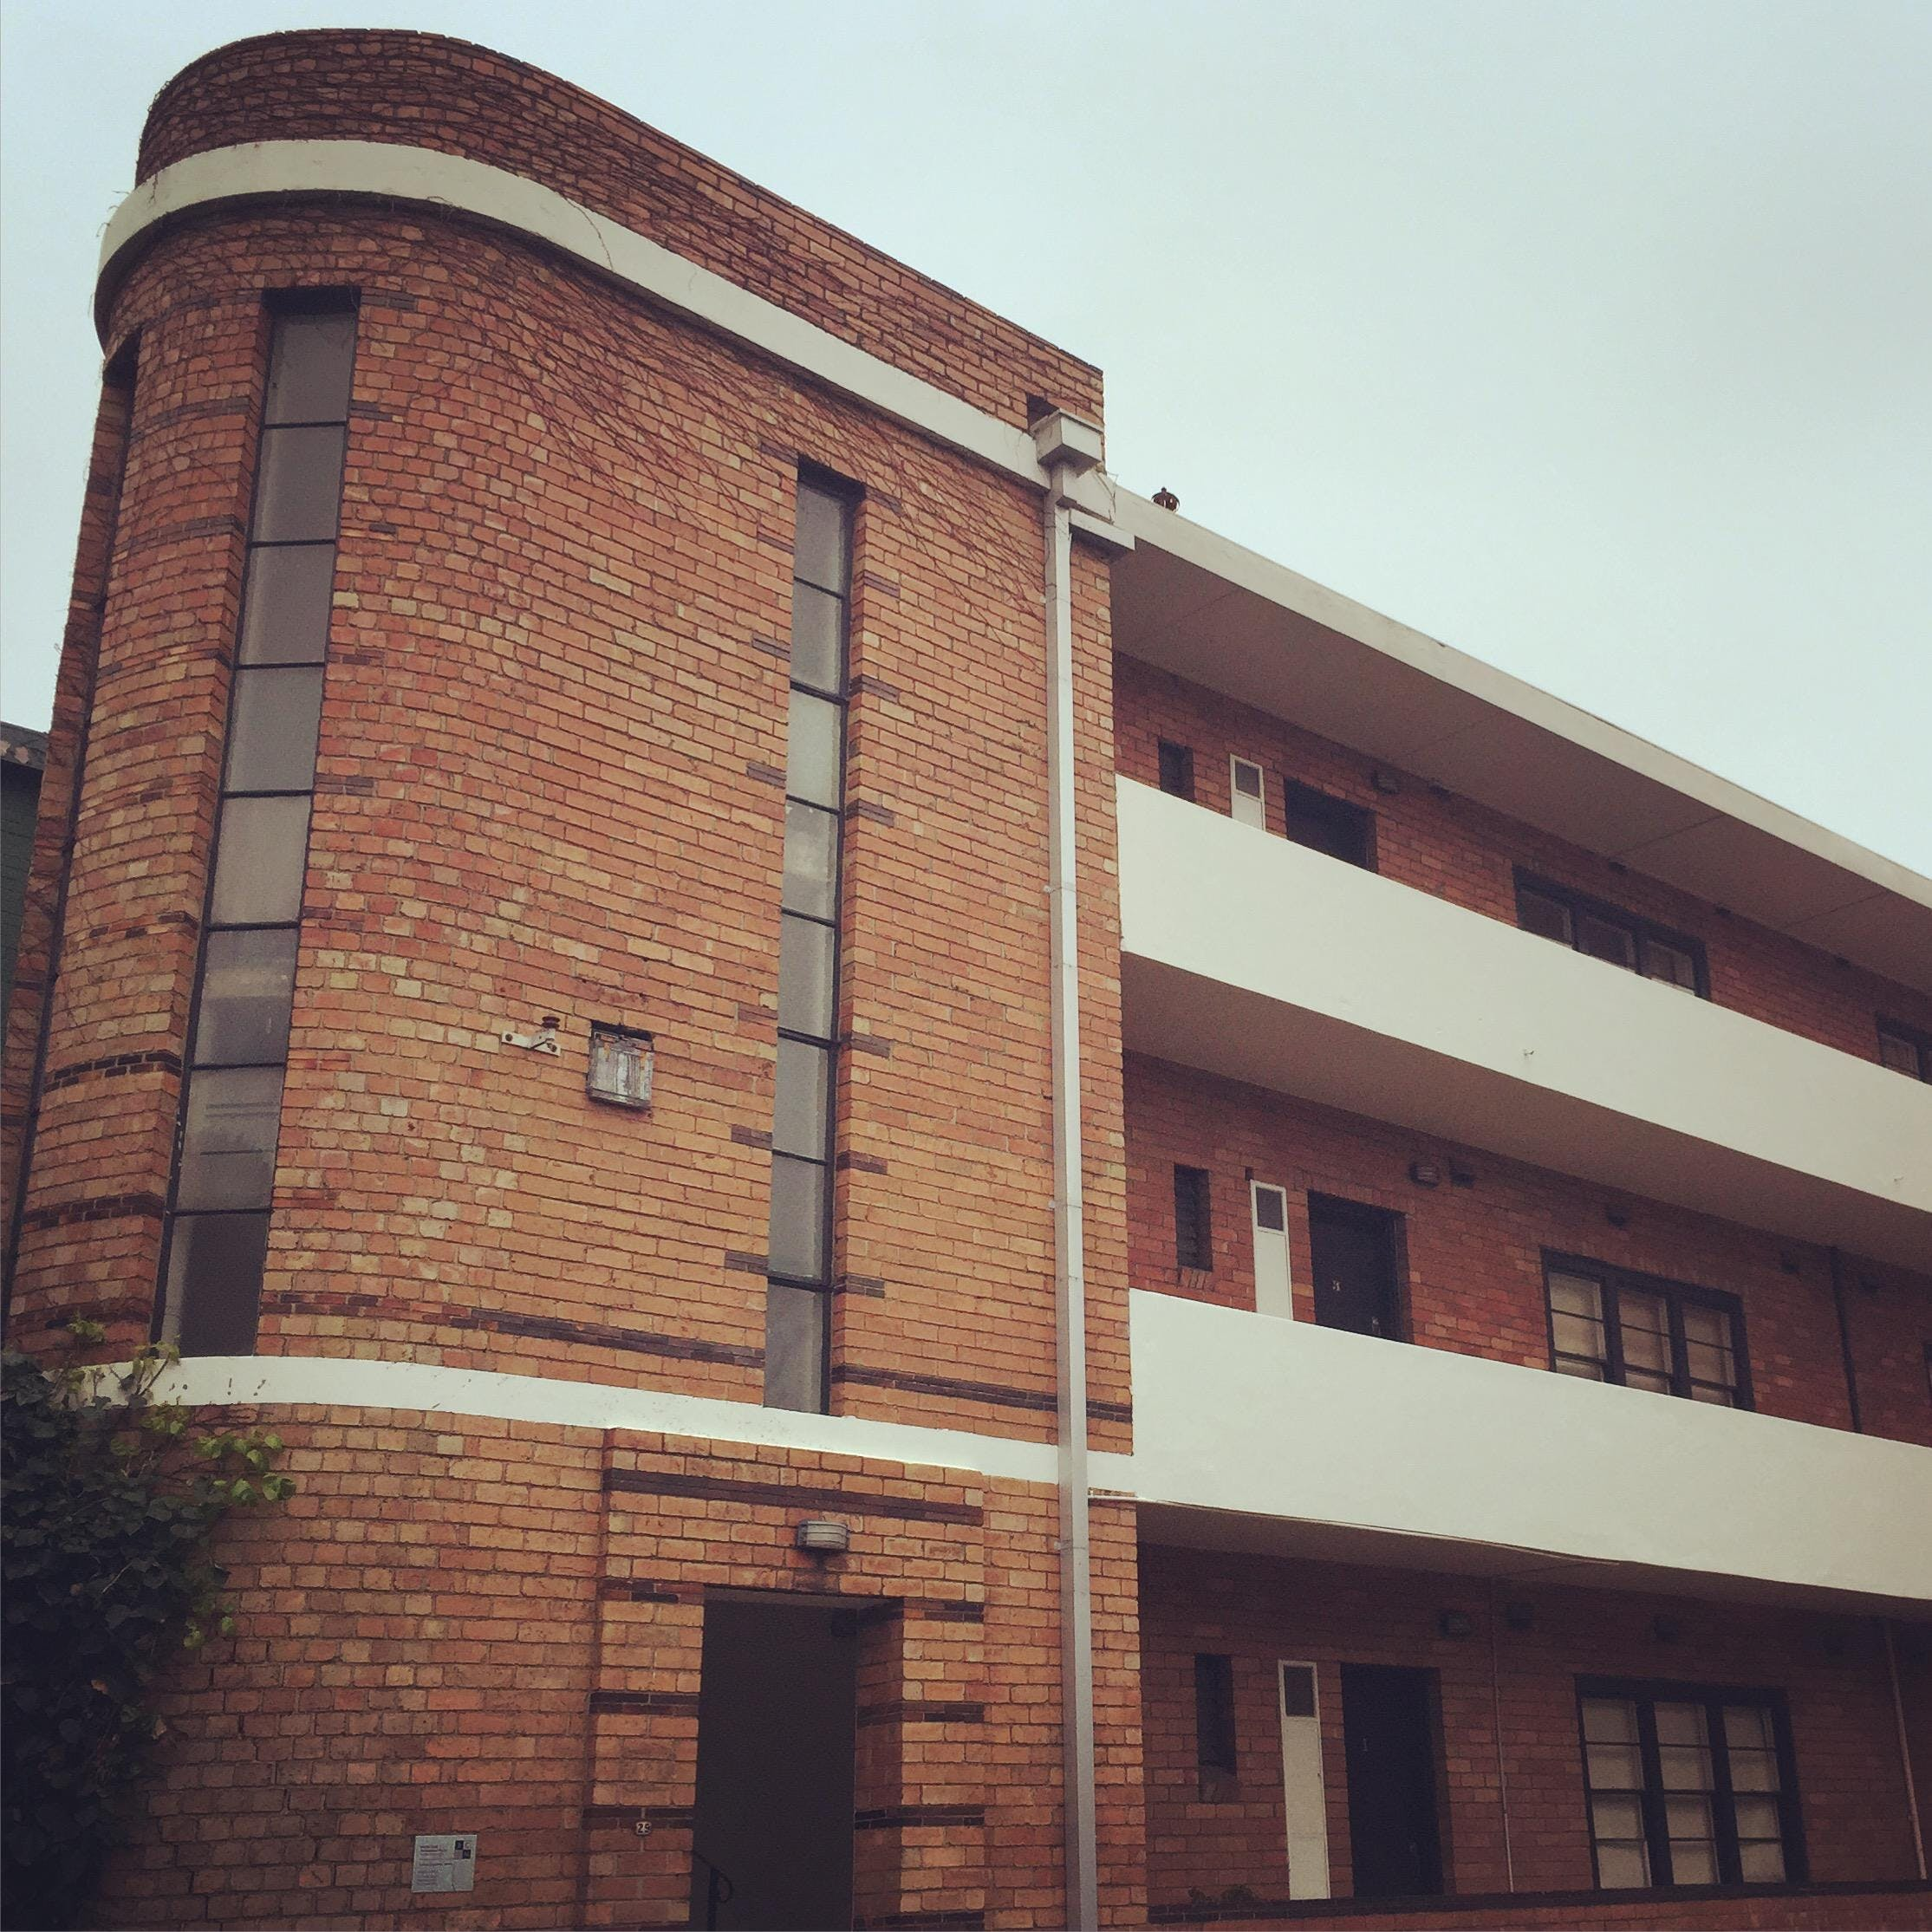 East Melbourne Art Deco walking tour